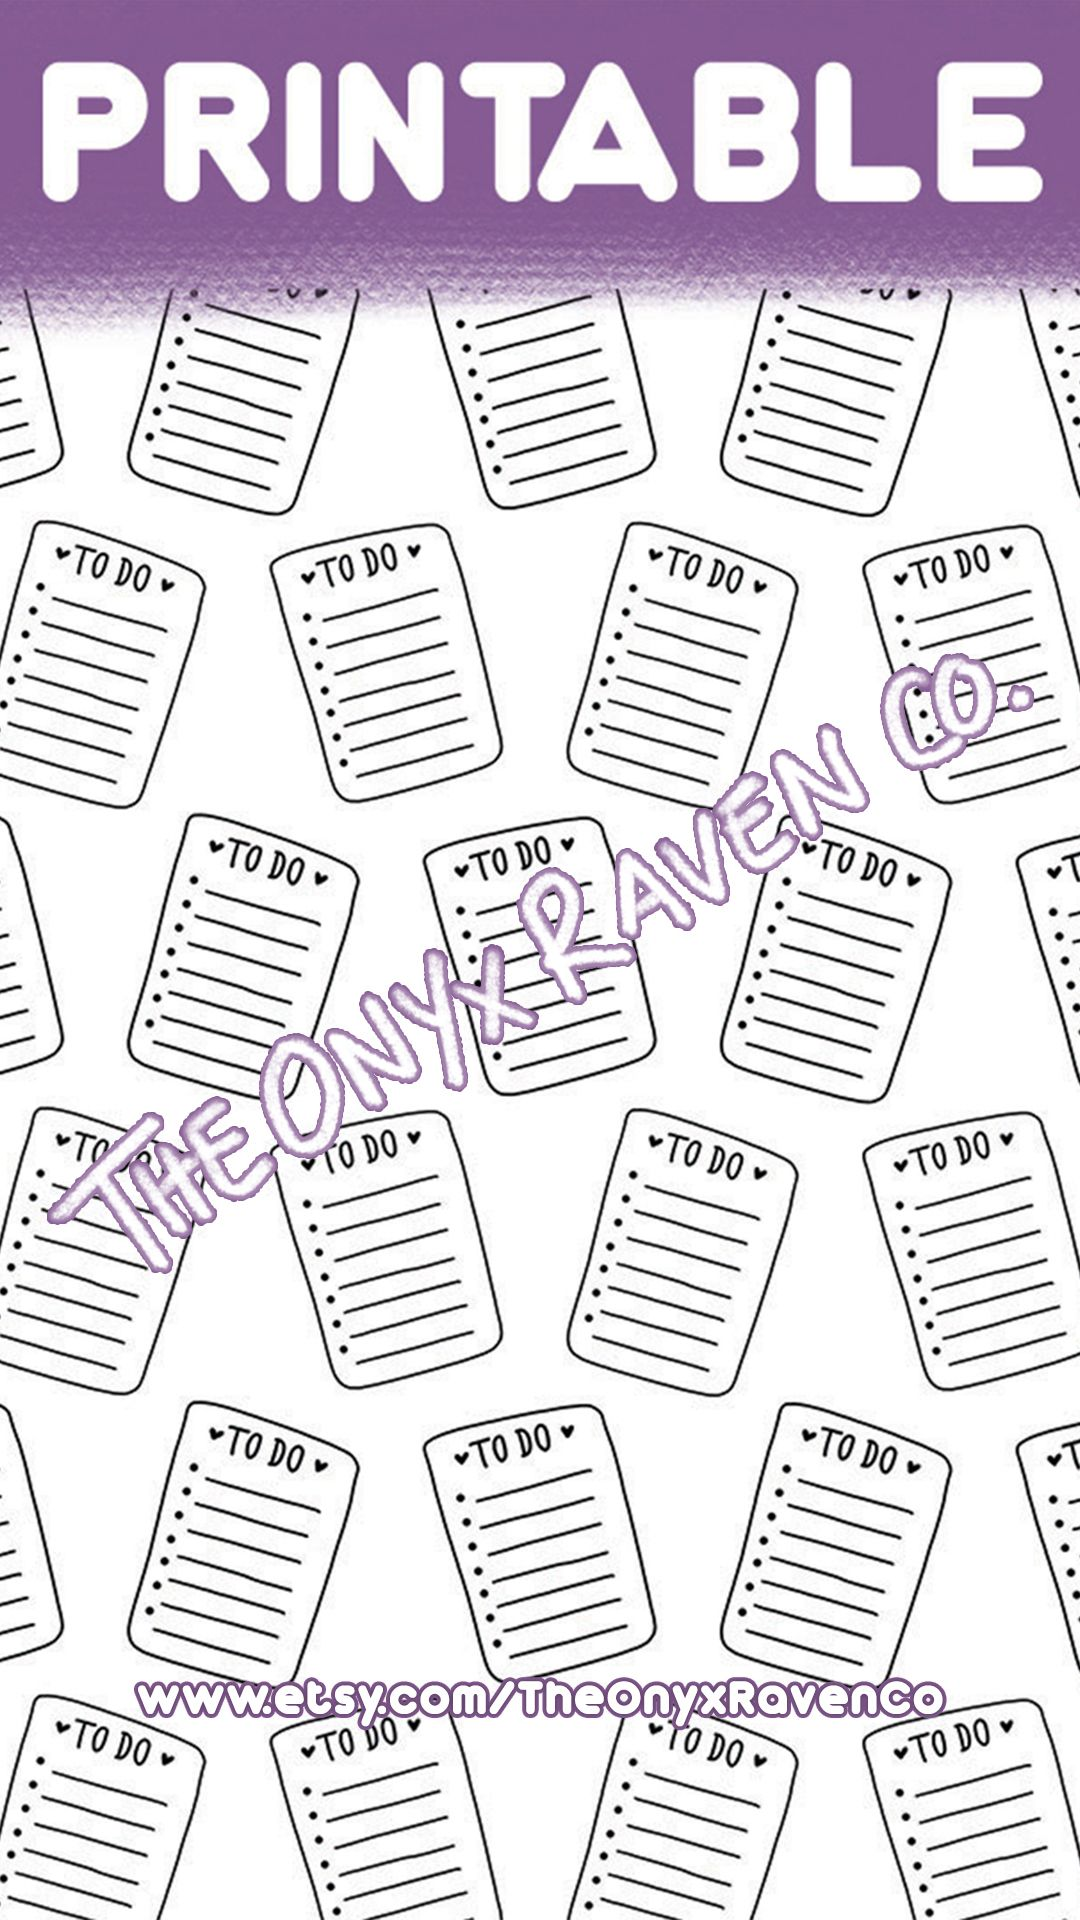 picture about Printable Vellum referred to as In the direction of Do Listing PRINTABLE VELLUM Acetate Paper Planner